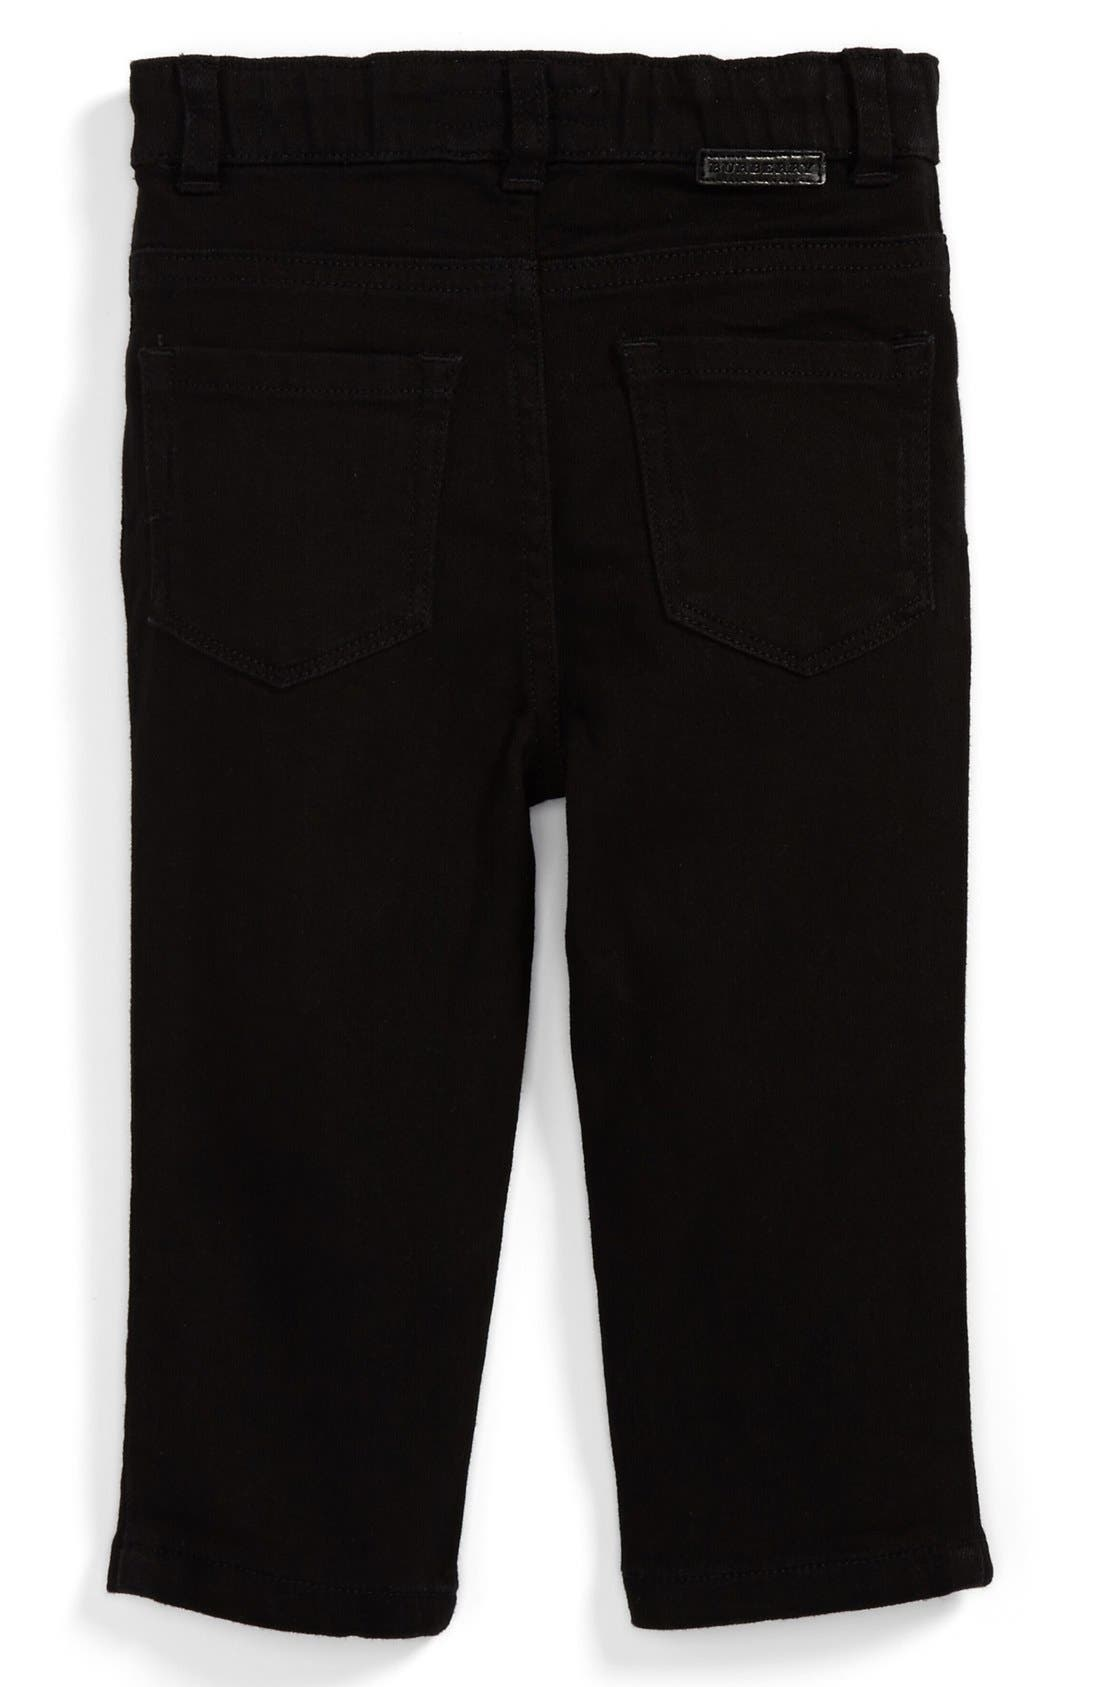 Alternate Image 1 Selected - Burberry 'Langston' Skinny Leg Jeans (Baby Boys)